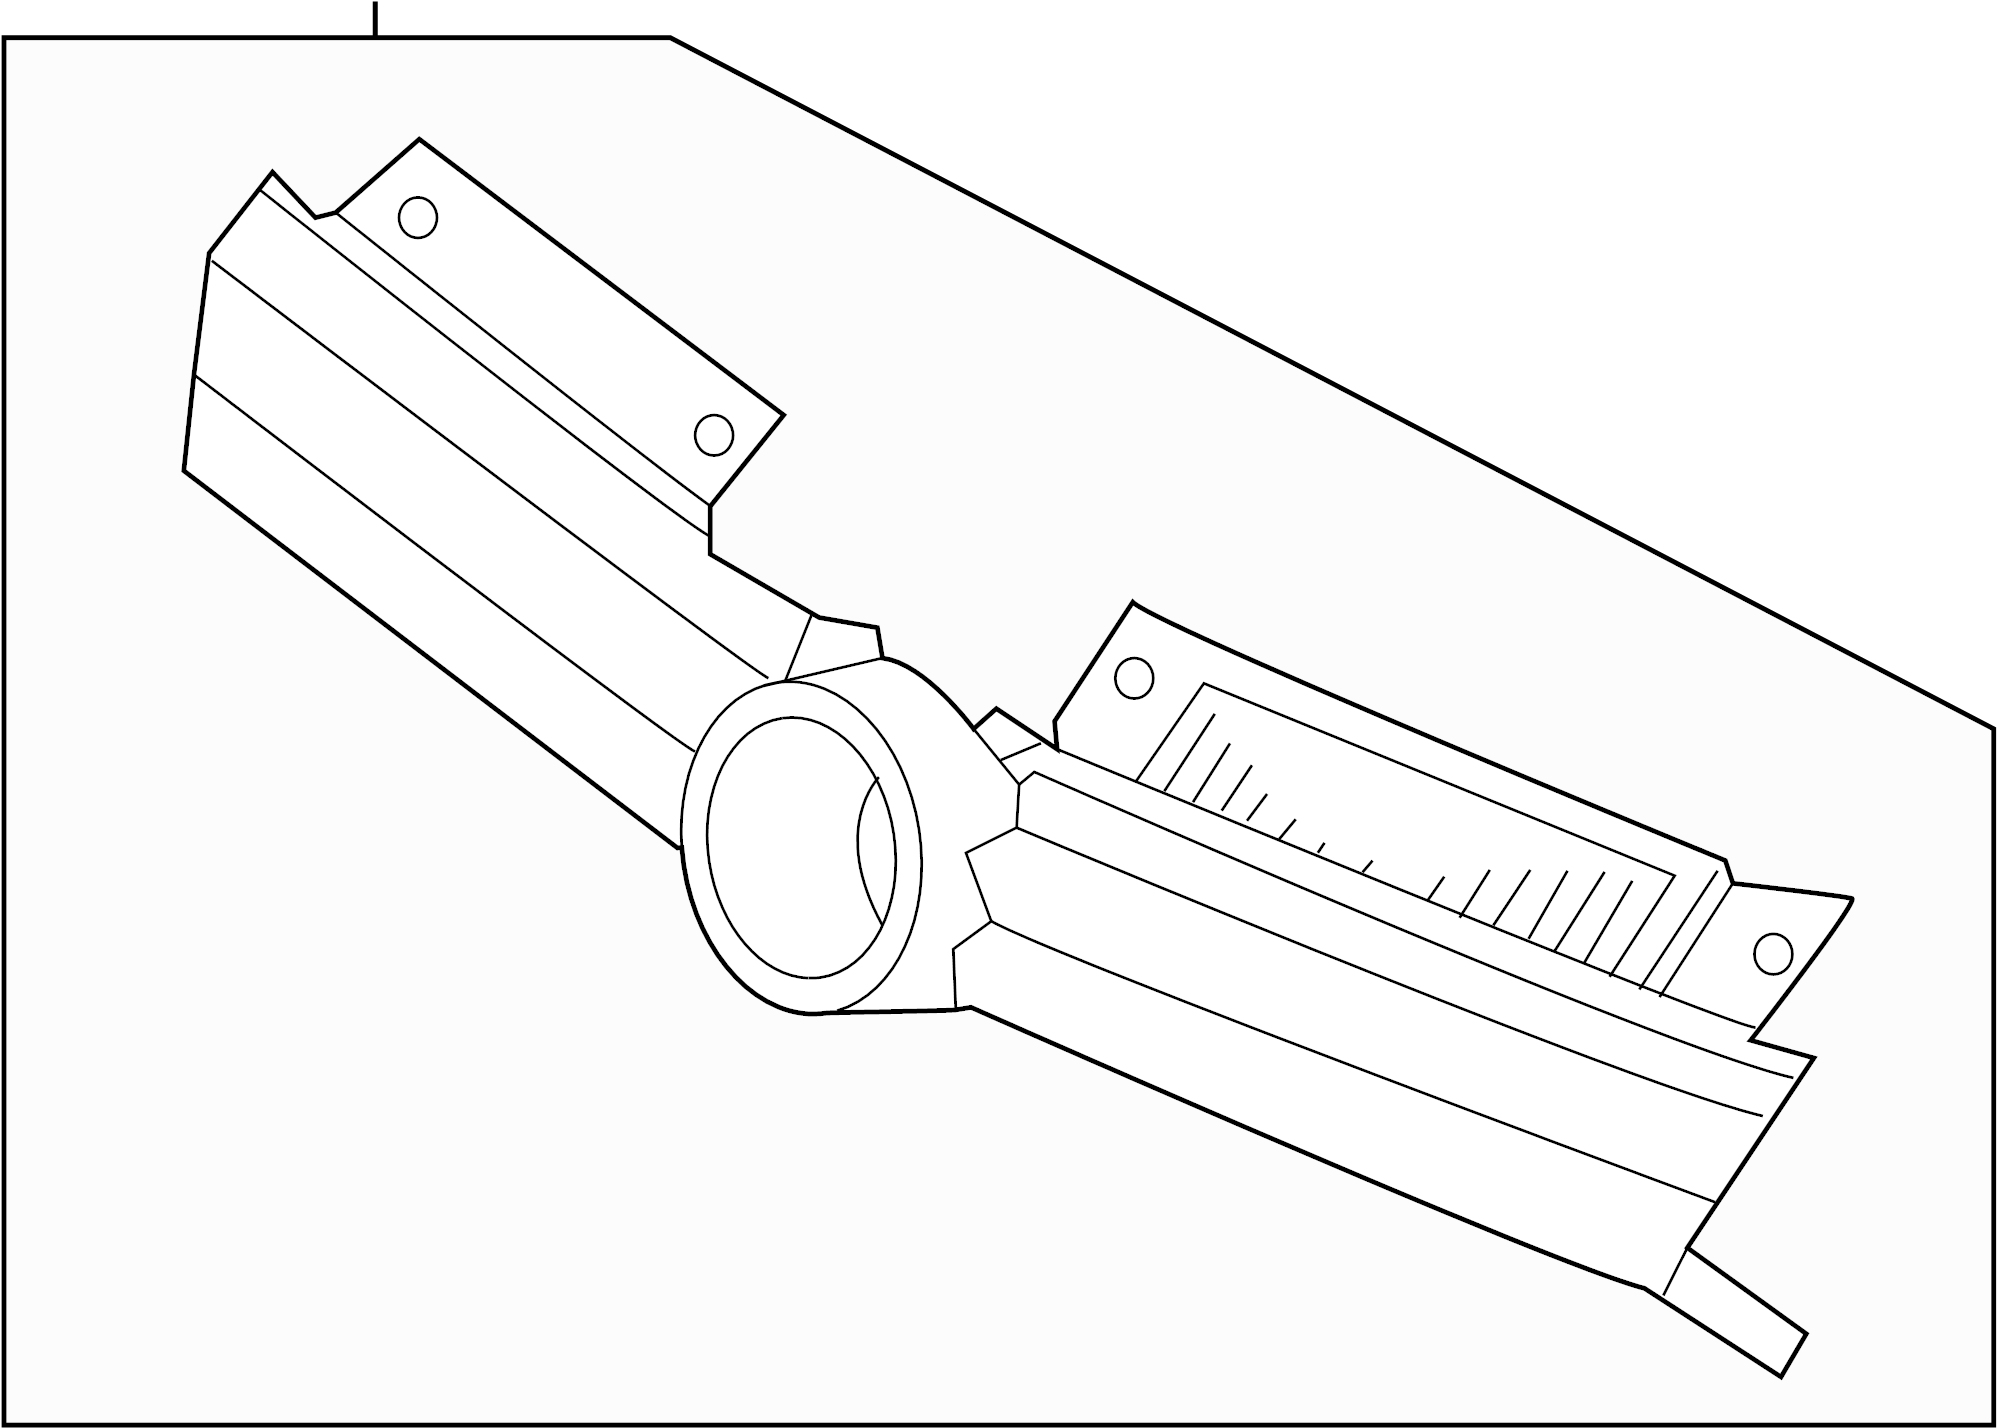 T151475 in addition Golf 3 Fuse Box Diagram besides Jetta Golf 93 99 Mk3 as well 47 55 1st Series Chevy Pickup together with On A 2000 Dodge Caravan Radiator Drain Plug. on volkswagen jetta hood latch diagram